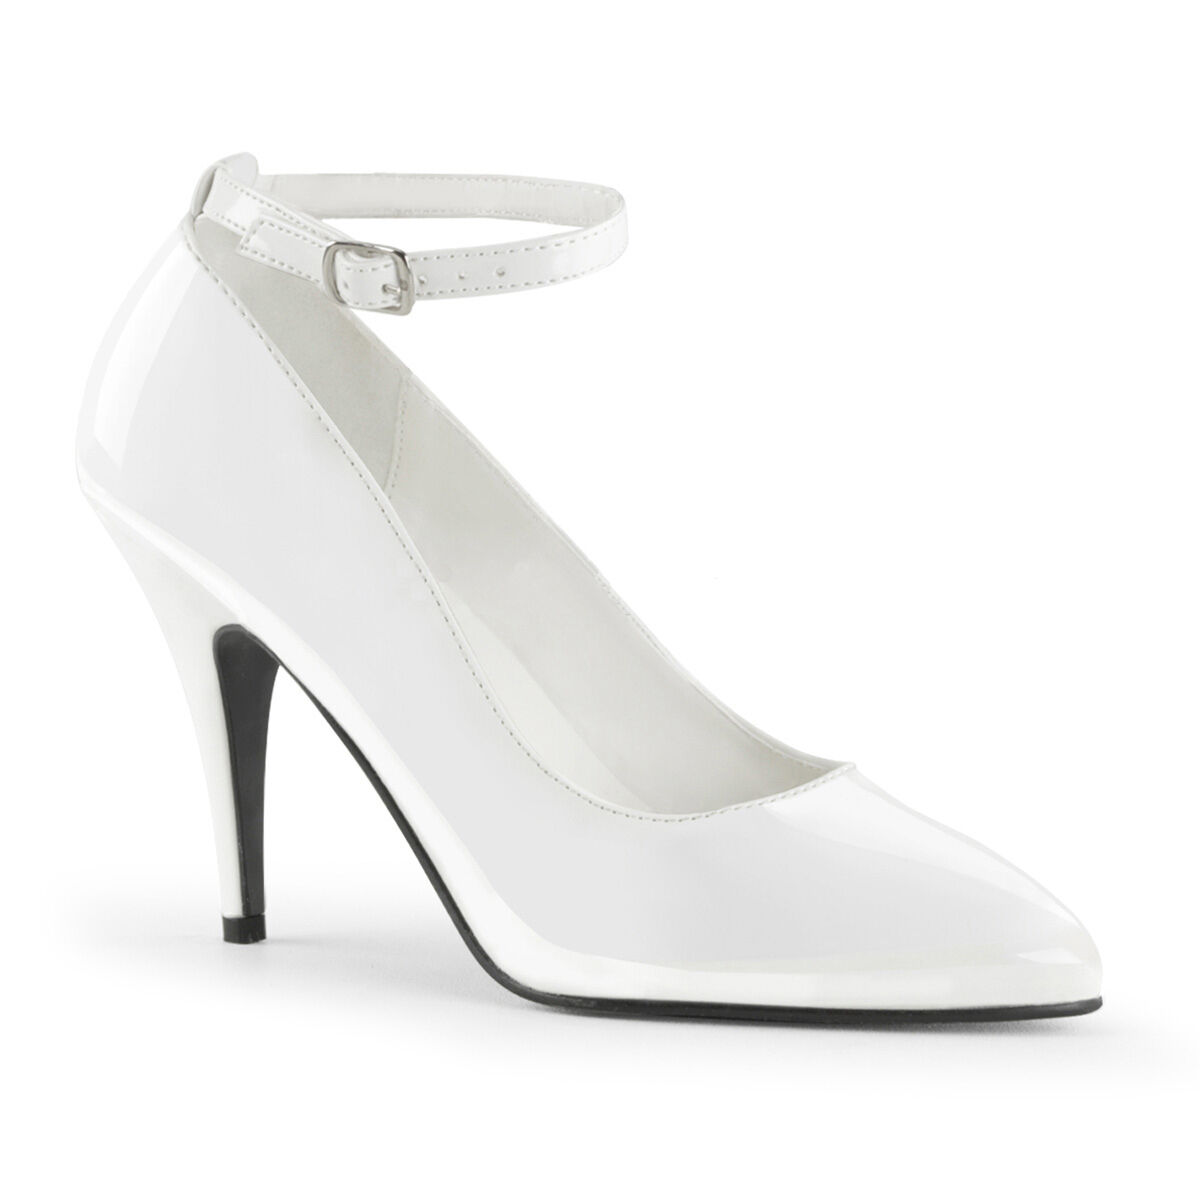 WEISS Ankle Strap Stiletto Heel Schuhes - Sissy Maids - TV/CD In Stock